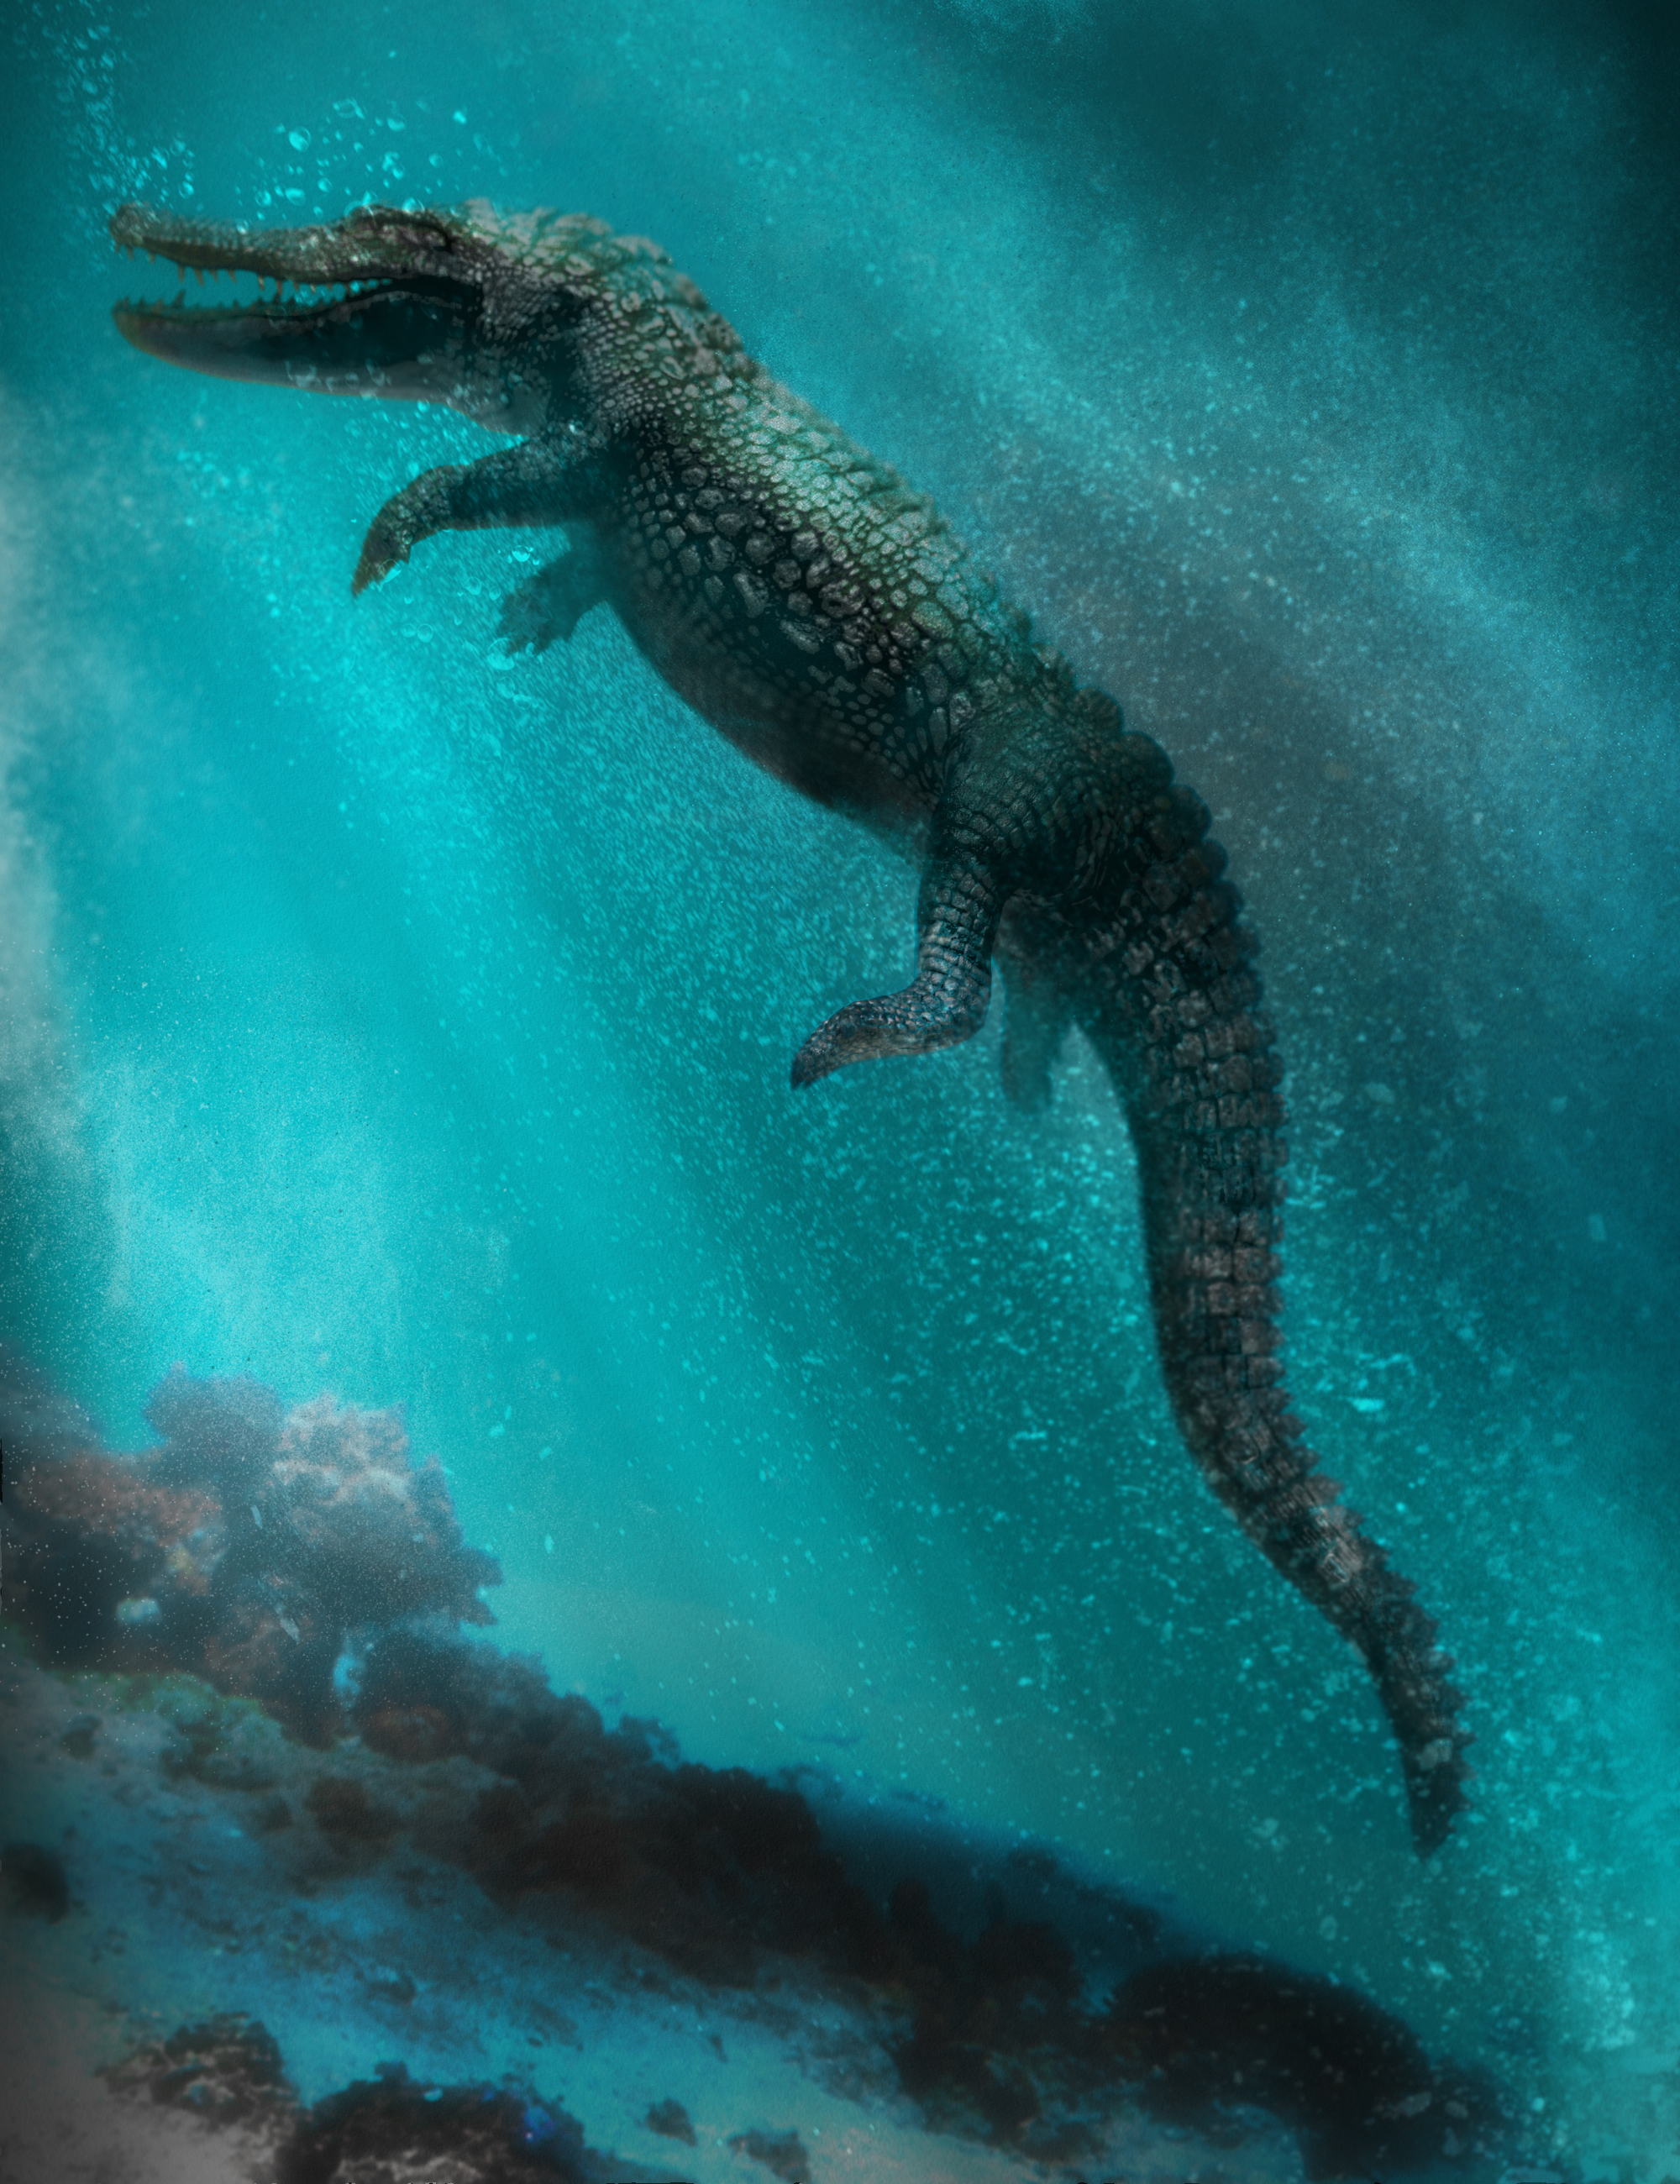 Iray Alligator by AM by: Alessandro_AM, 3D Models by Daz 3D